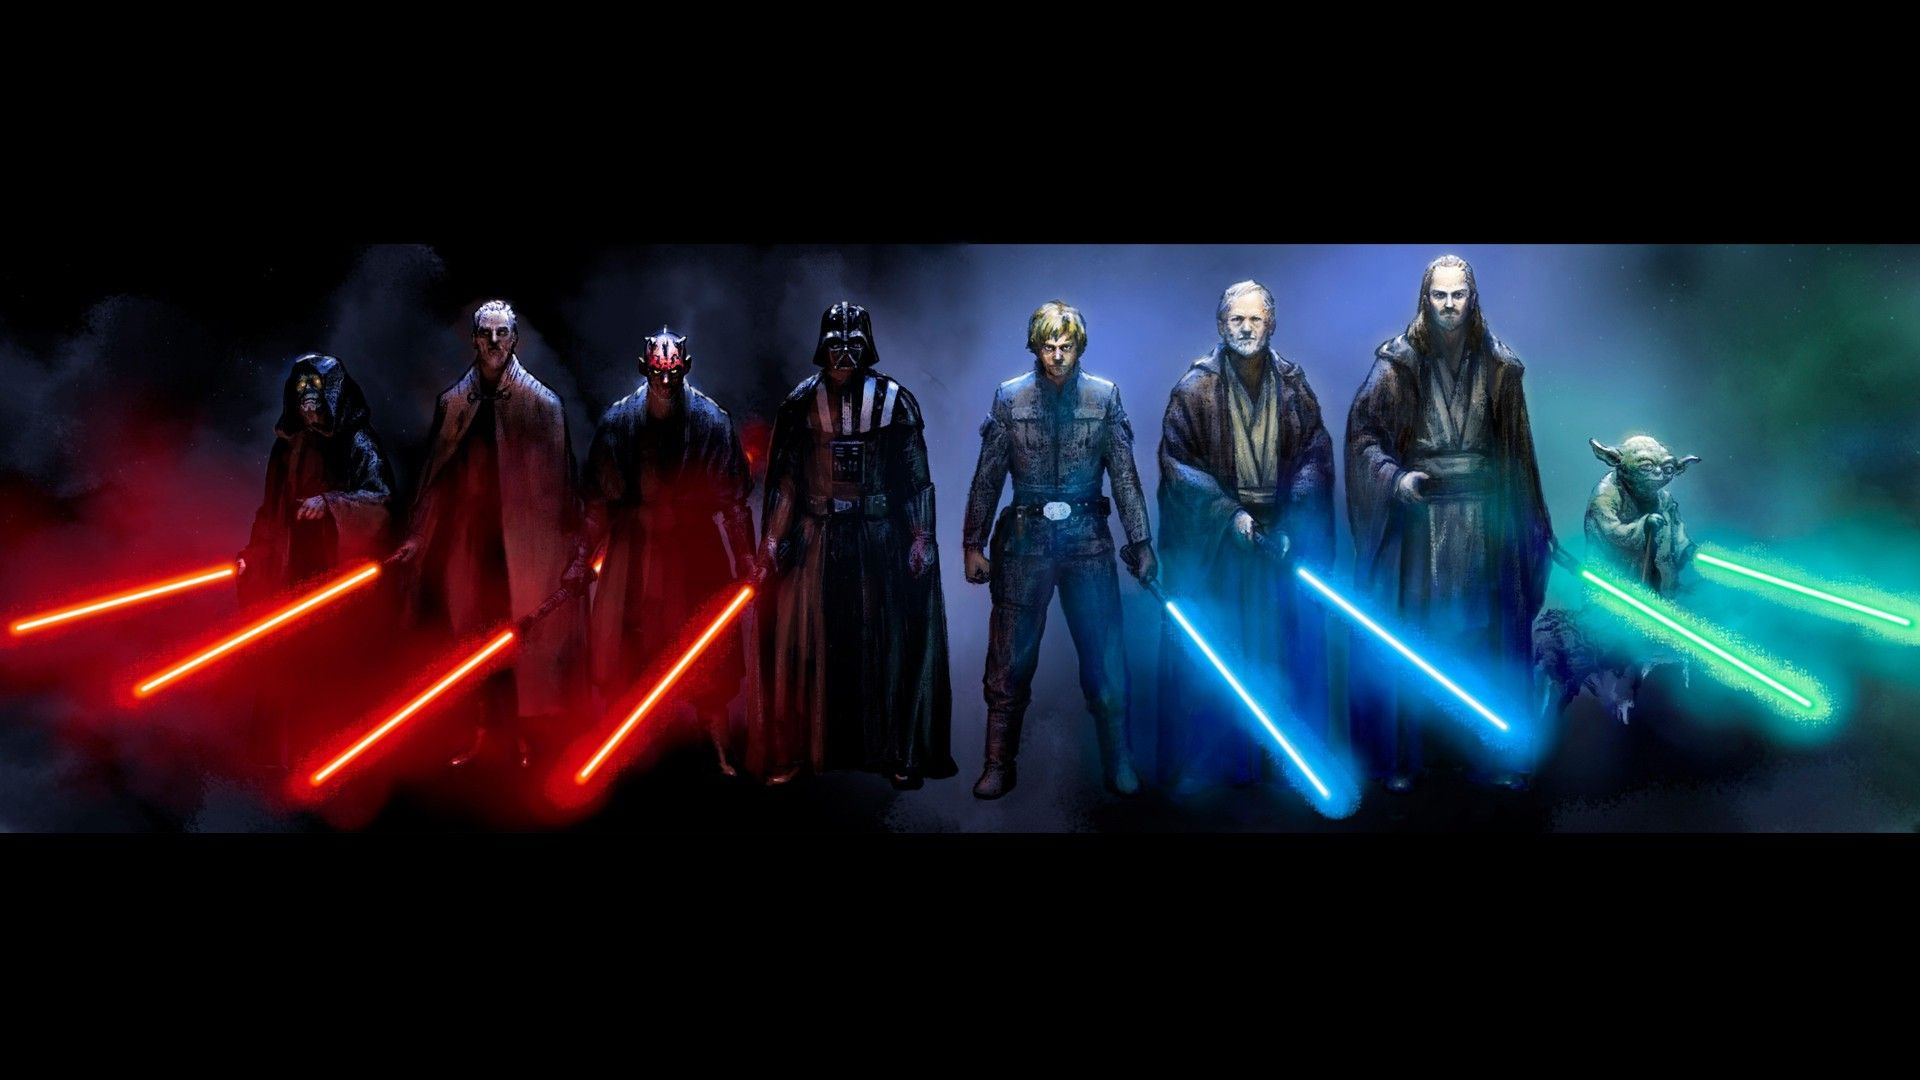 The Force Is With You Always Star Wars Images Star Wars Pictures Star Wars Sith